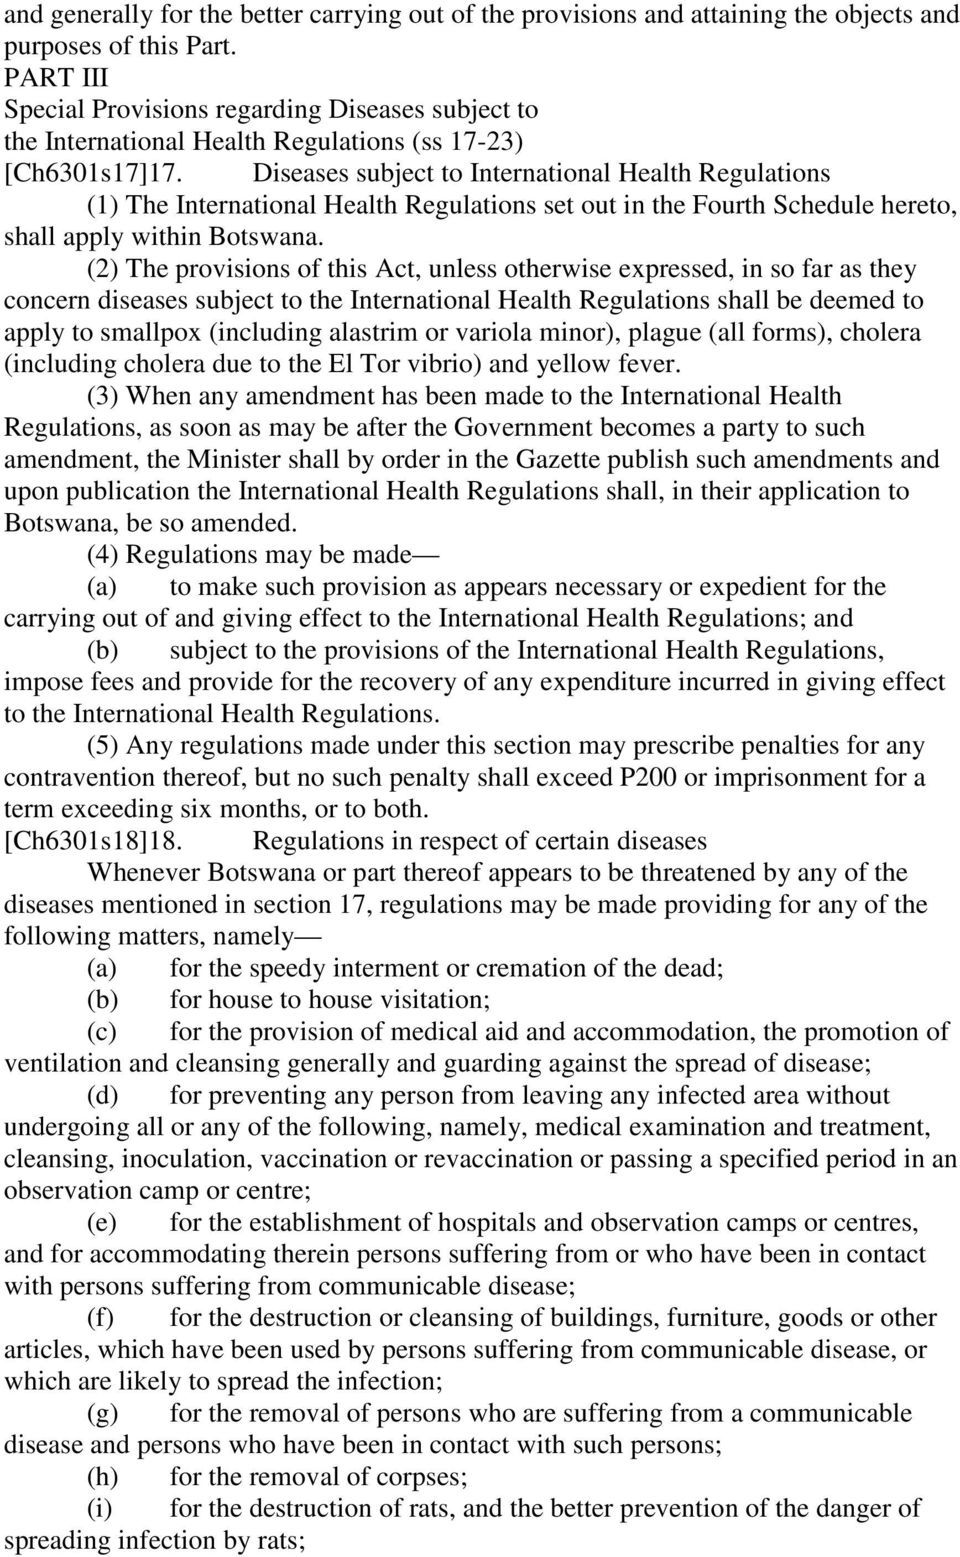 Diseases subject to International Health Regulations (1) The International Health Regulations set out in the Fourth Schedule hereto, shall apply within Botswana.